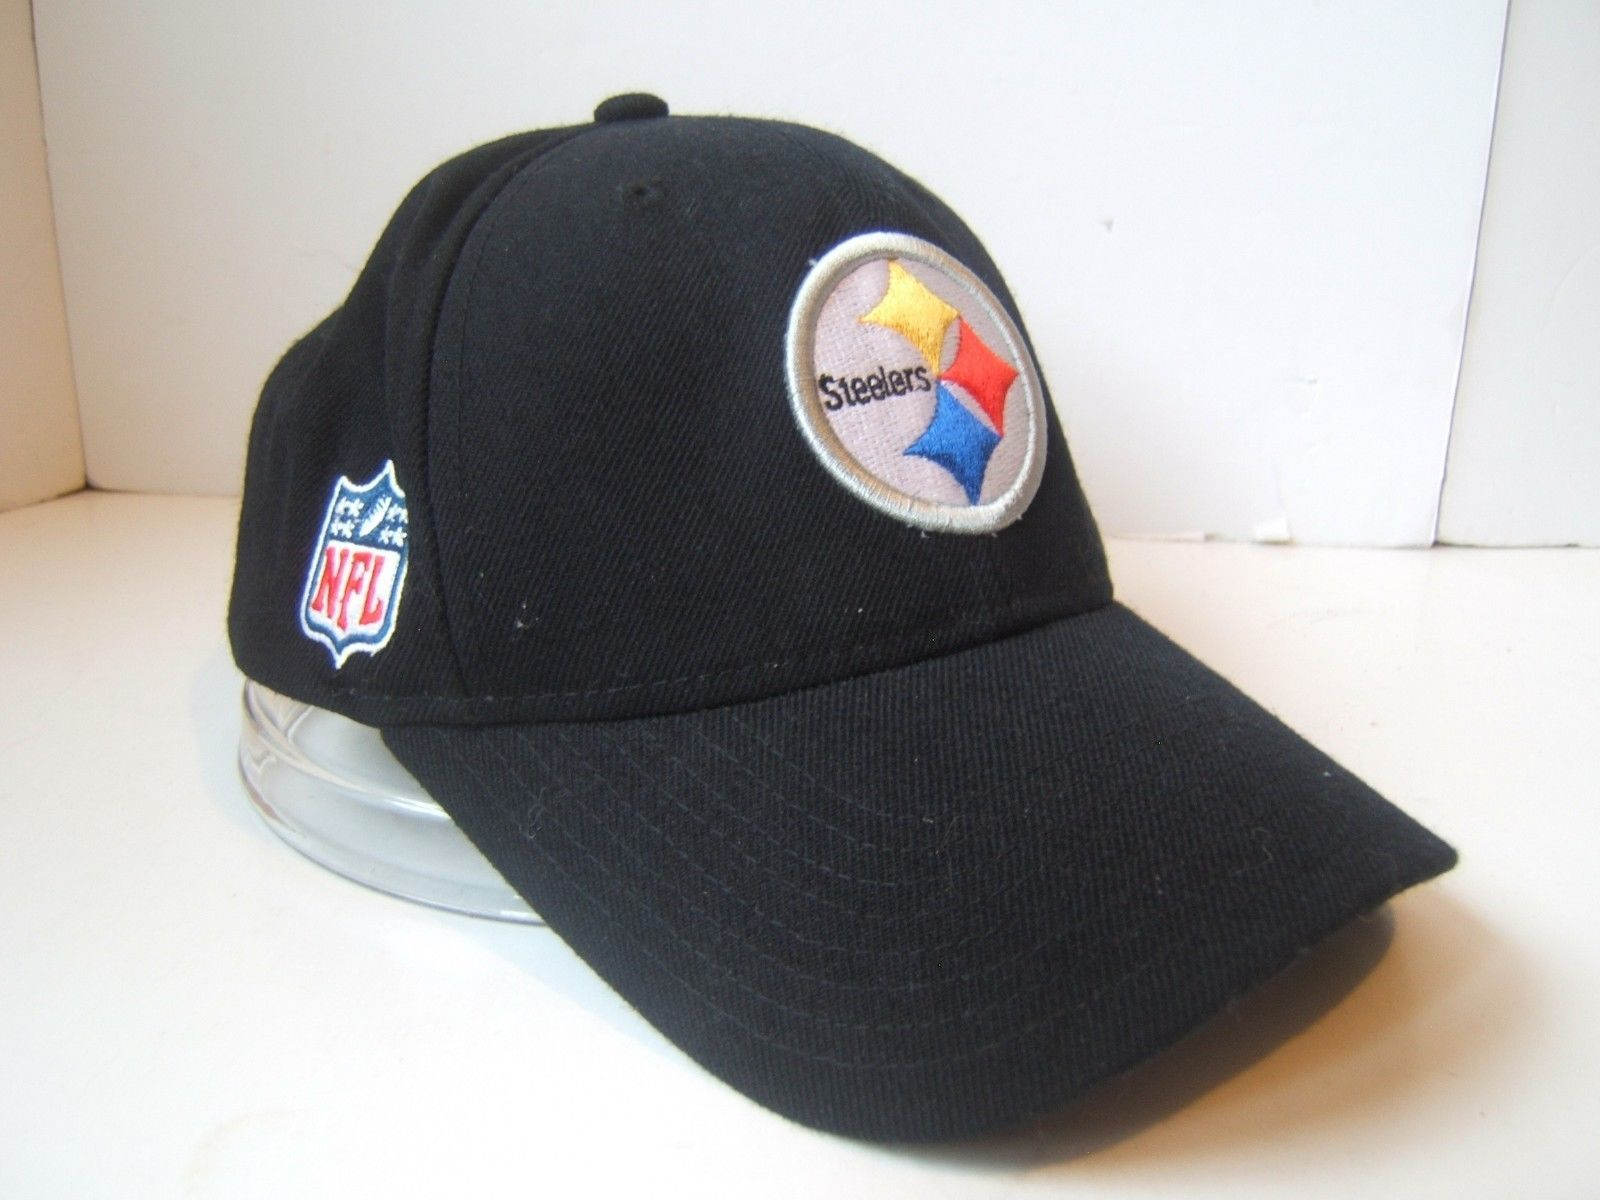 Pittsburgh Steelers NFL Football Hat Black and 50 similar items d816f973a019